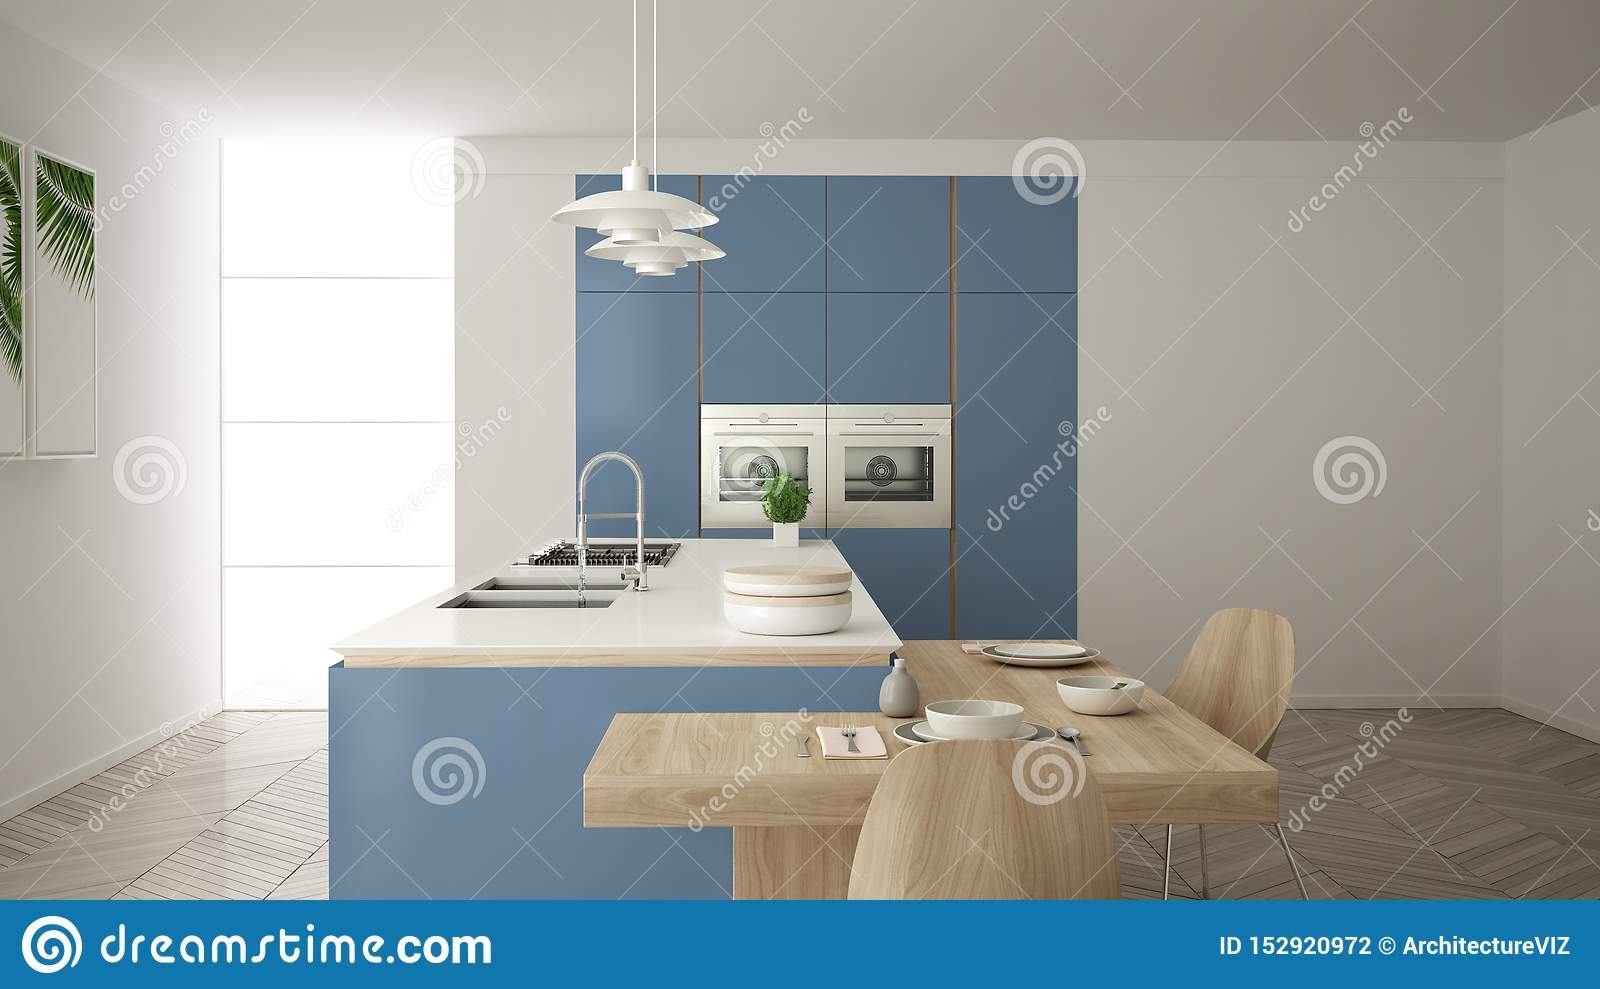 Modern Clean Contemporary Blue Kitchen Island And Wooden Dining Table With Chairs Bamboo And Potted Plants Big Window And Stock Illustration Illustration Of Frame Nobody 152920972